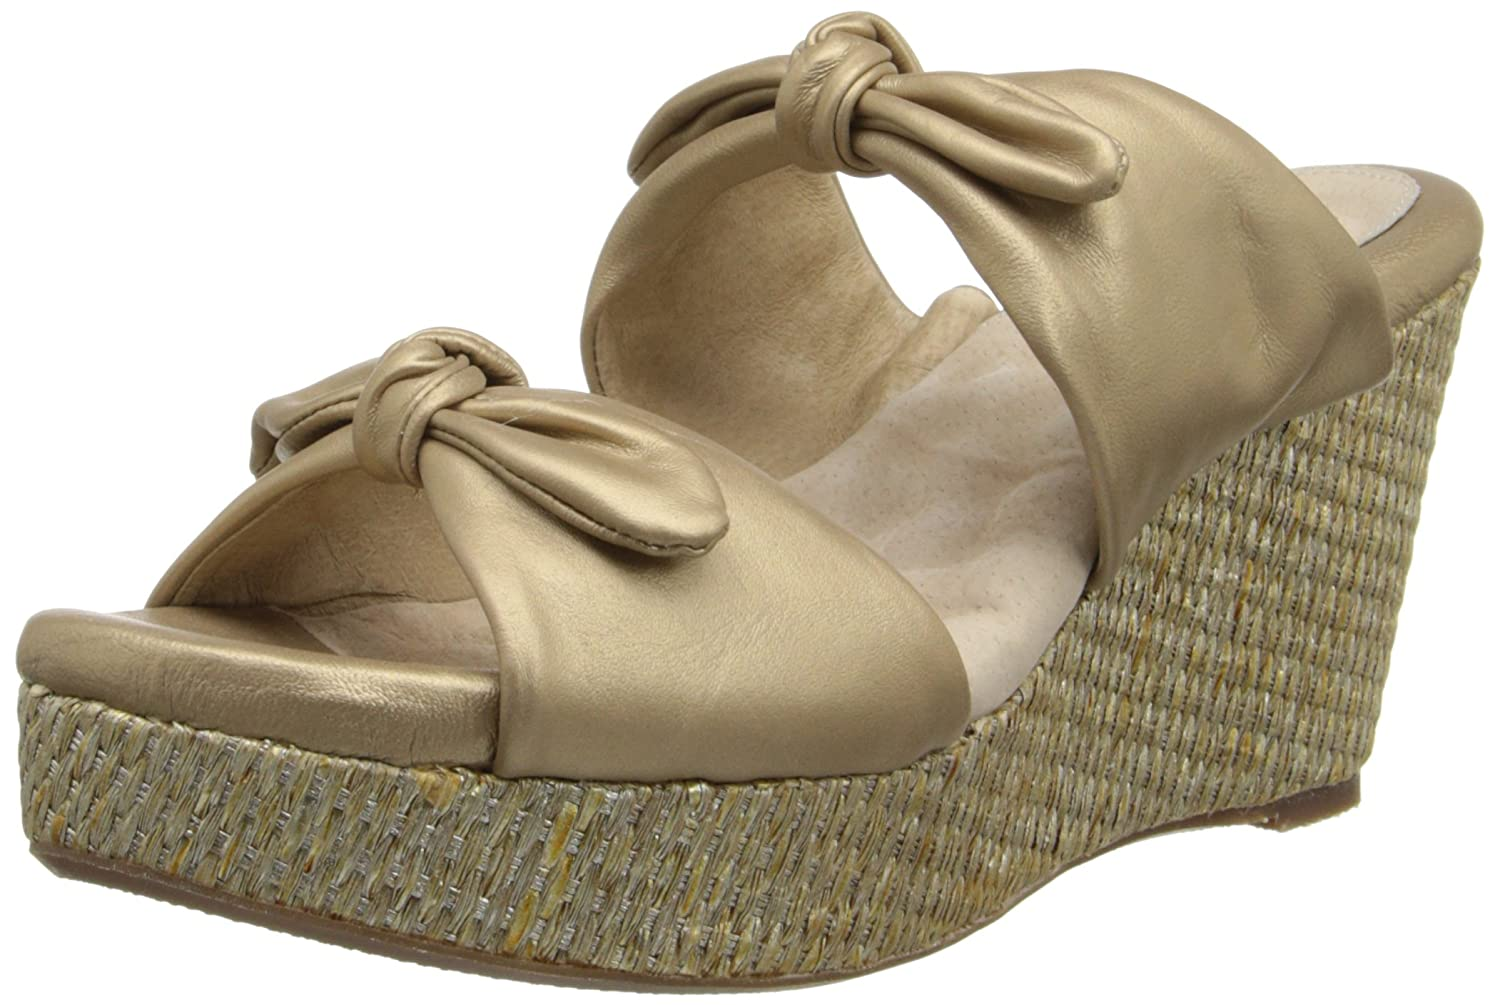 SoftWalk Women's Sunnyvale Wedge Sandal B00DR18MUY 12 2A(N) US|Gold Wash